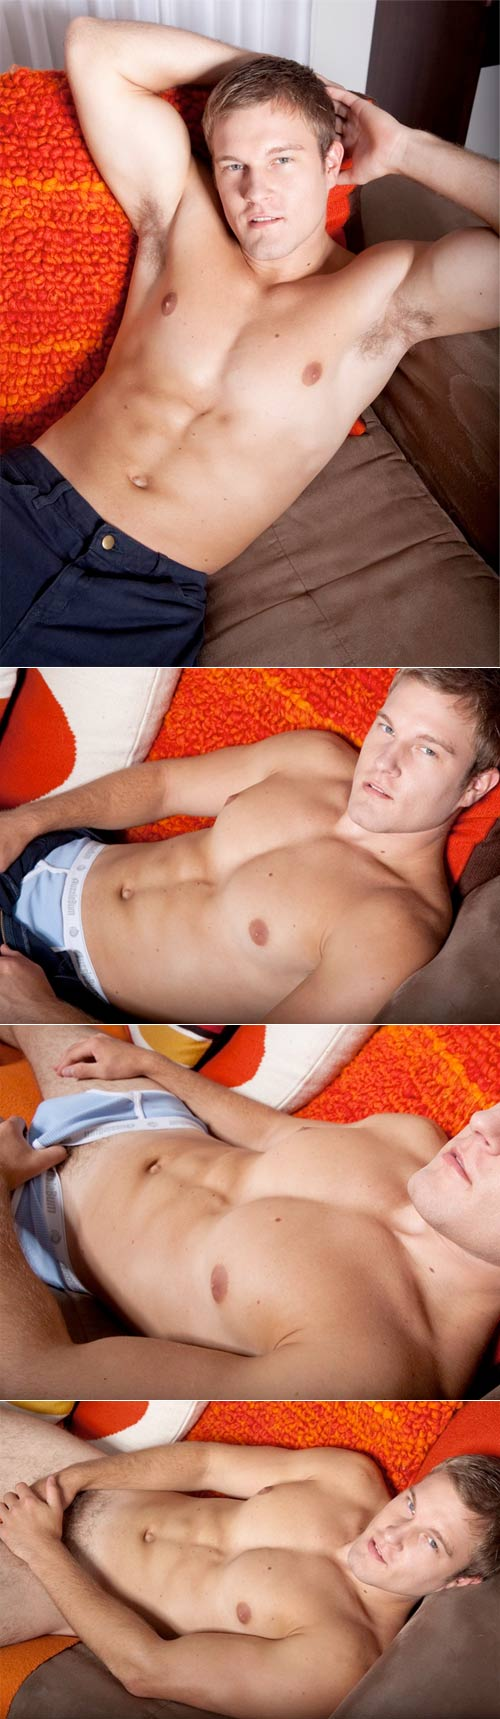 Patrick Dunne at RandyBlue.com